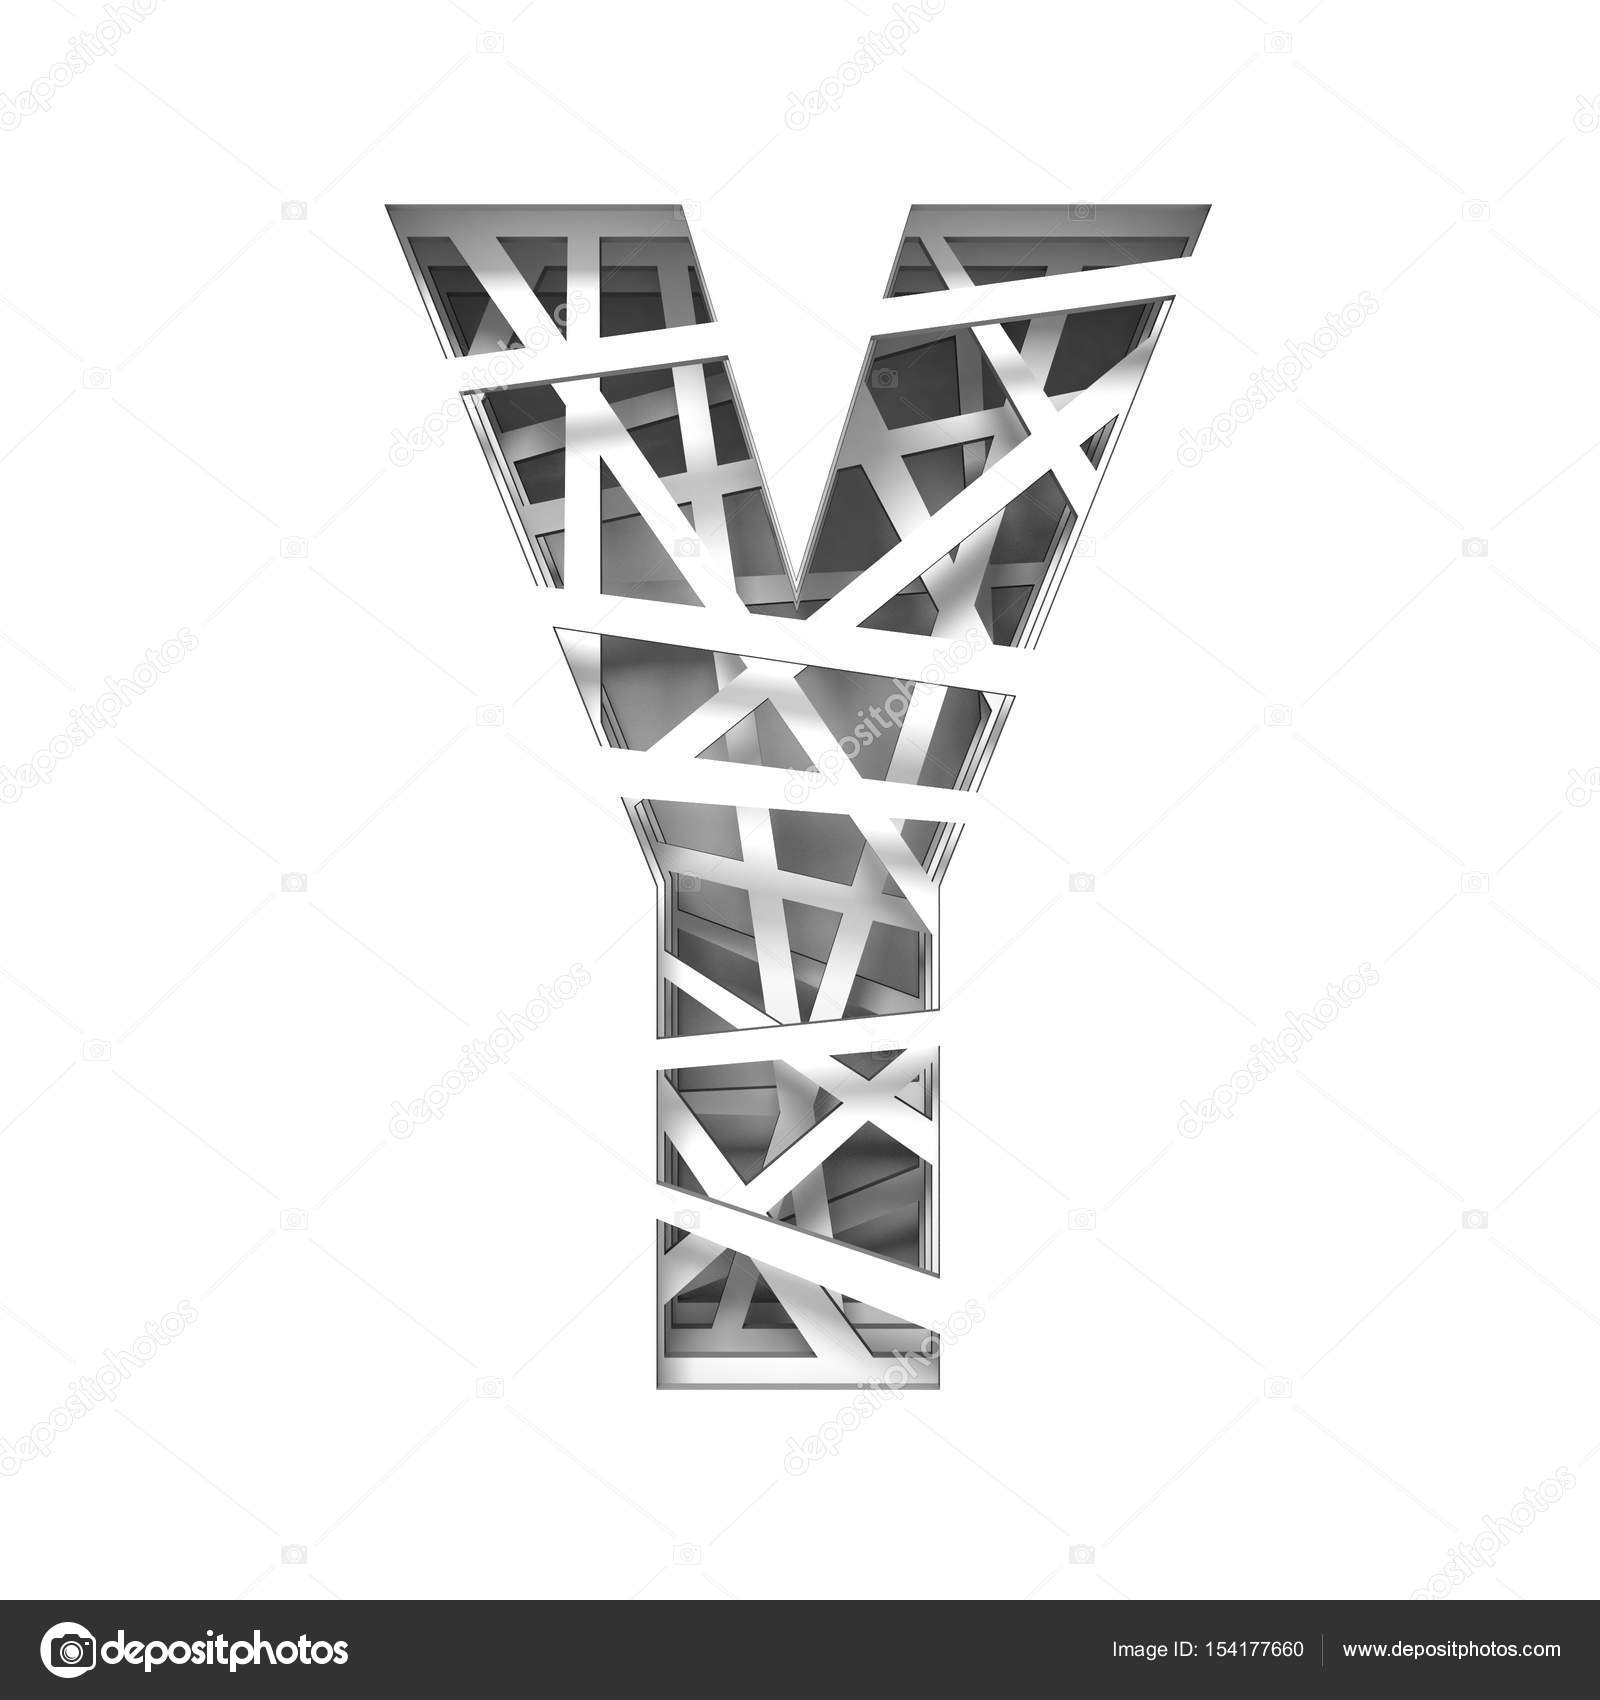 Paper cut out font letter y 3d stock photo djmilic 154177660 paper cut out font letter y 3d stock photo spiritdancerdesigns Image collections